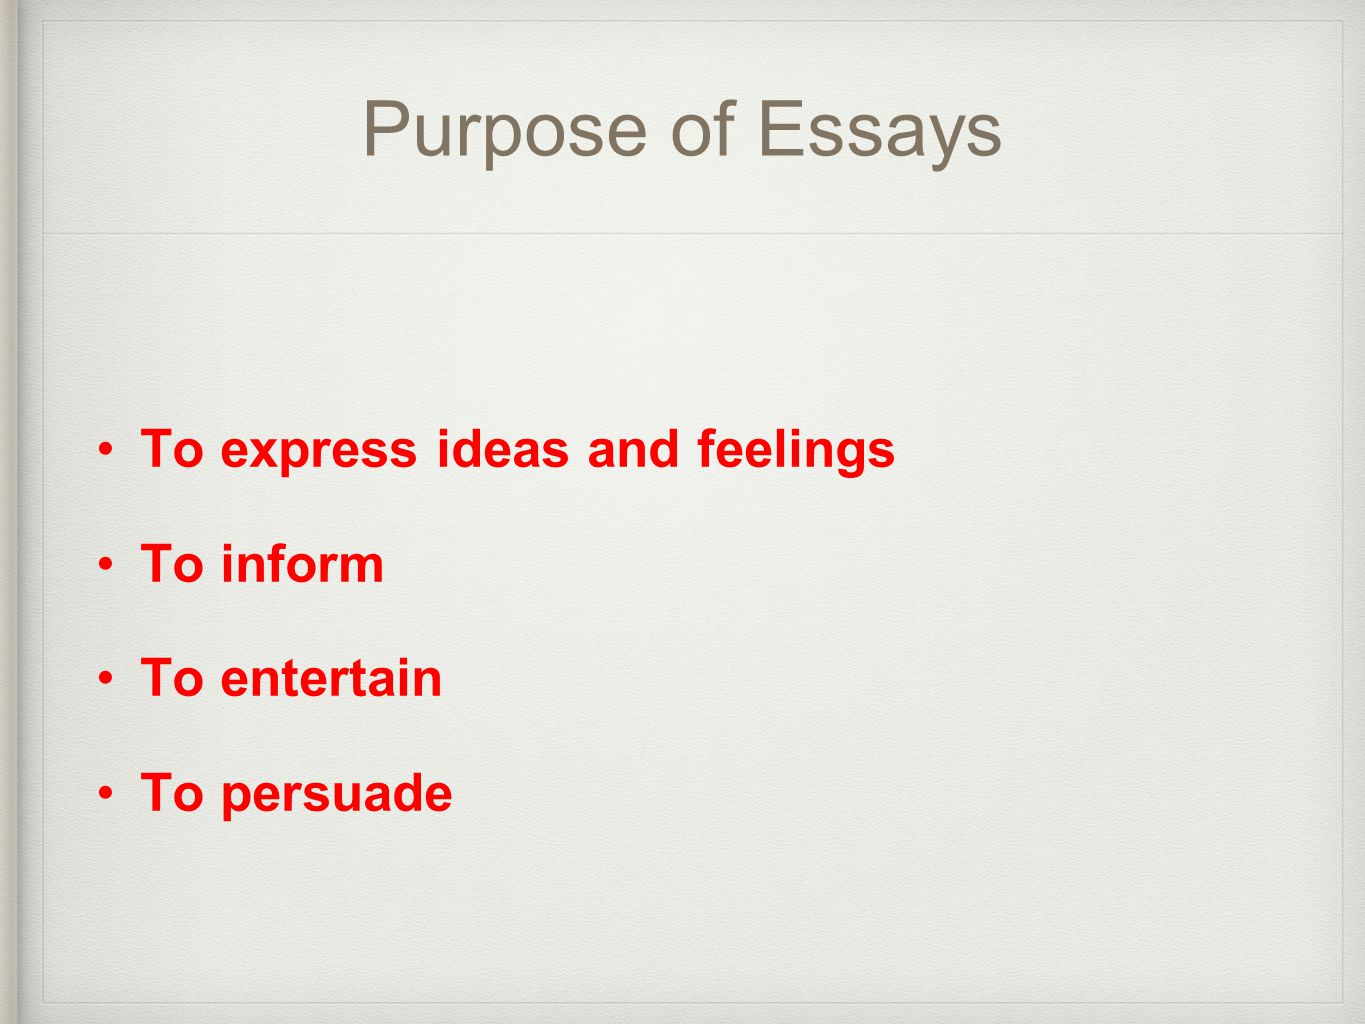 essay on purpose of study Top Essay: Essay On Purpose Of Study with FREE Plagiarism Check!